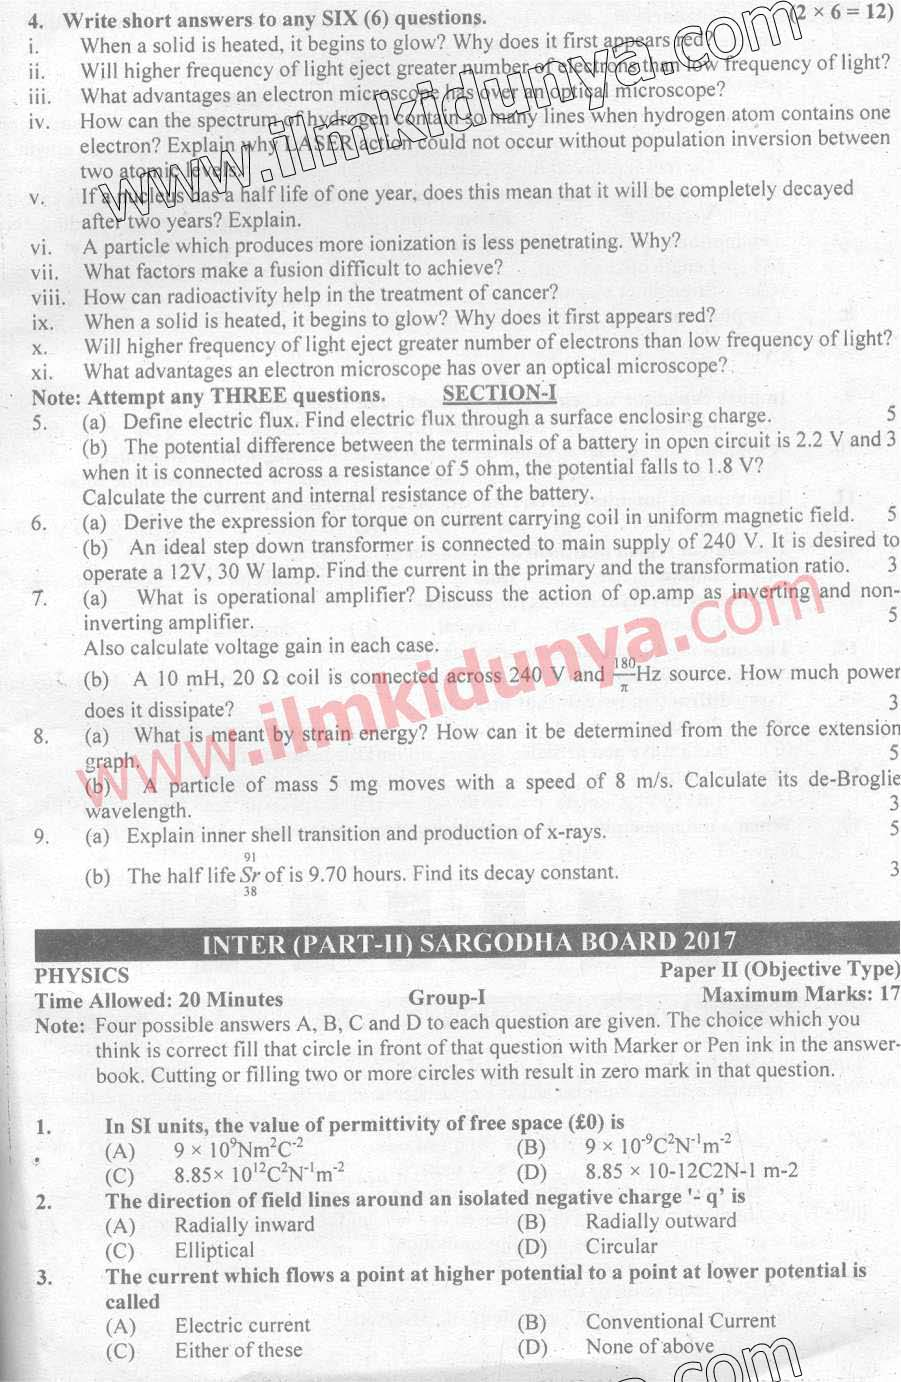 Past Papers 2017 Gujranwala Board Inter Part 2 Physics